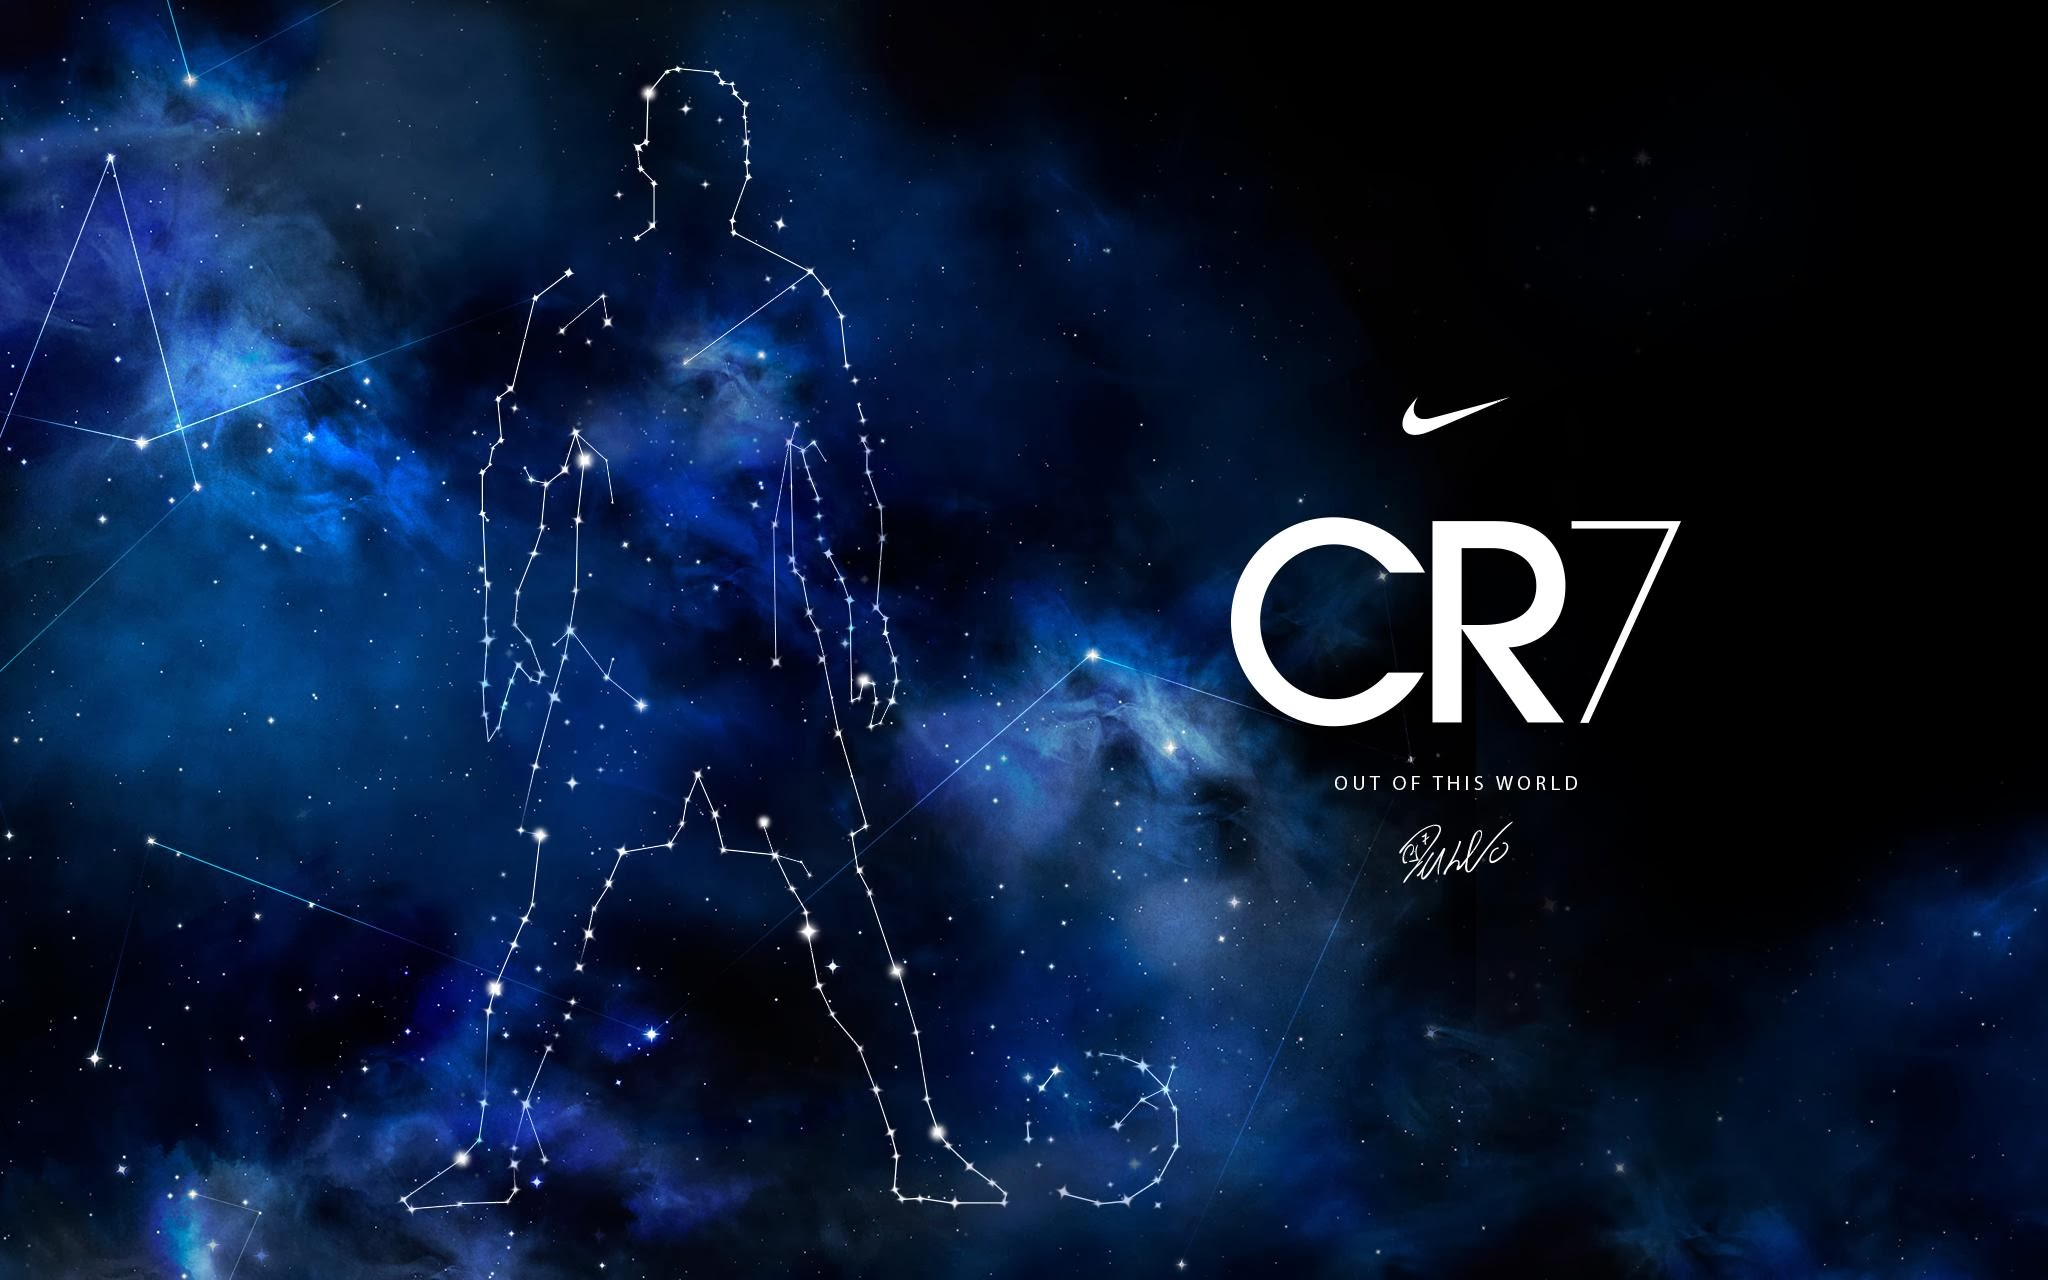 CR7 Out Of This World Wallpaper 2048x1280